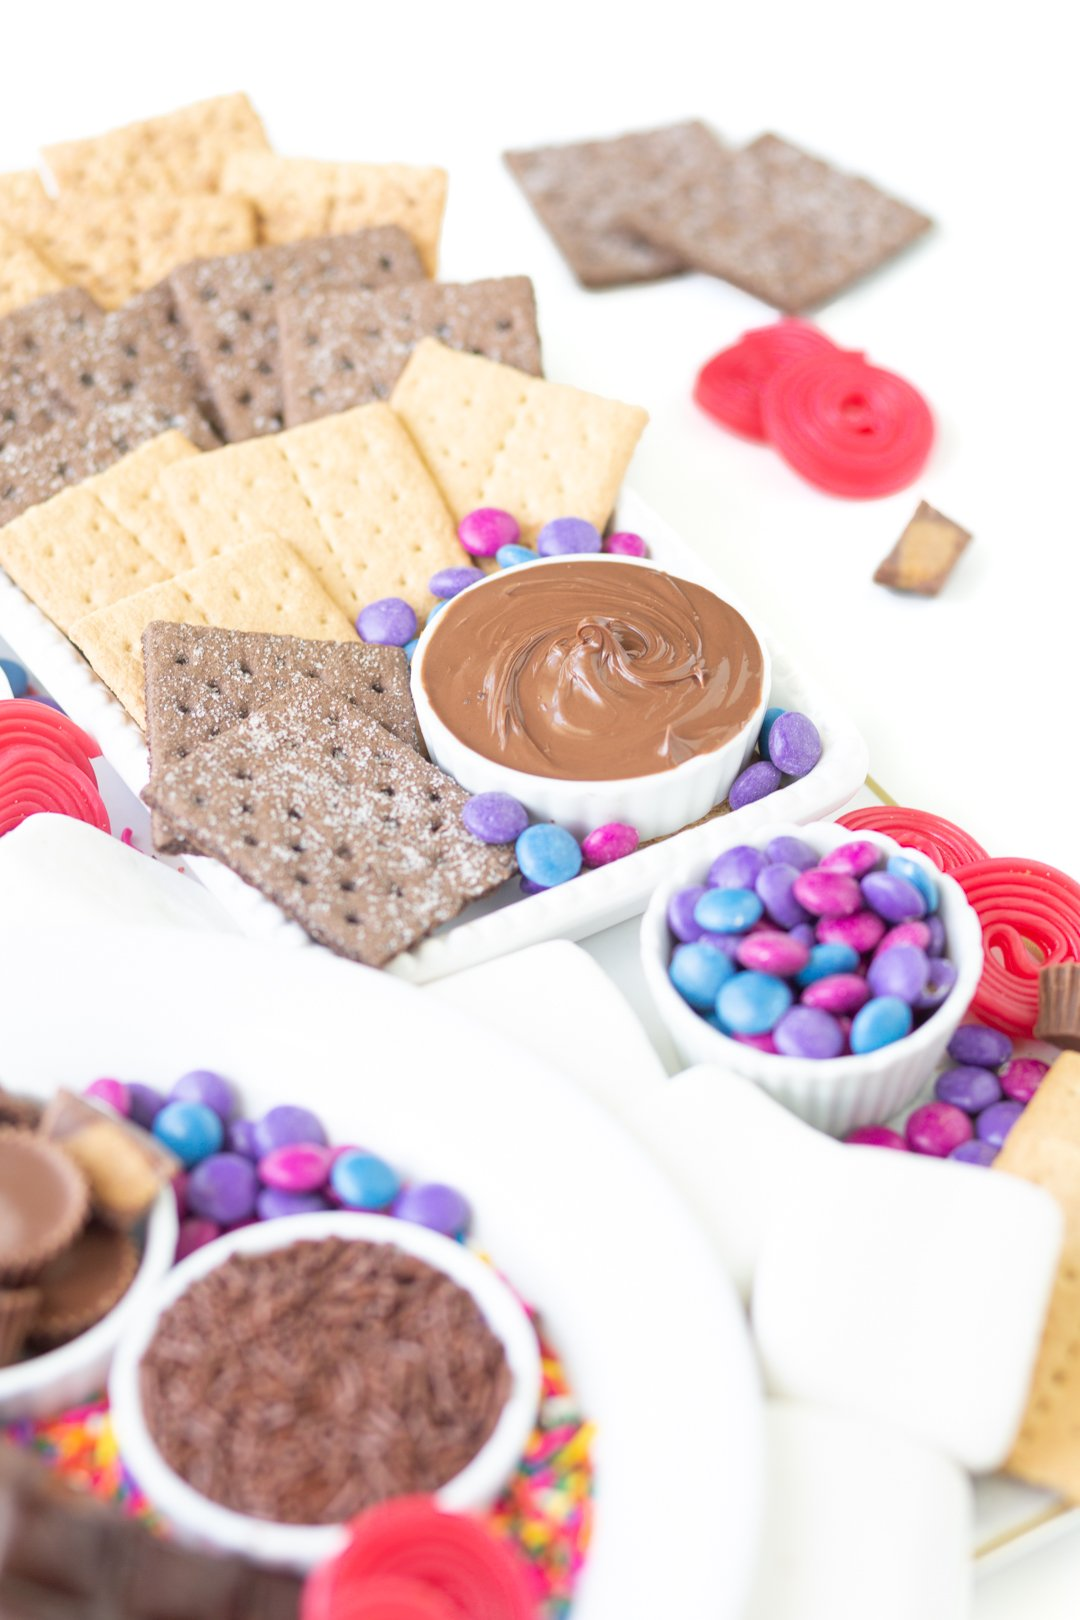 s'mores dessert grazing board with candies, spreads, graham crackers